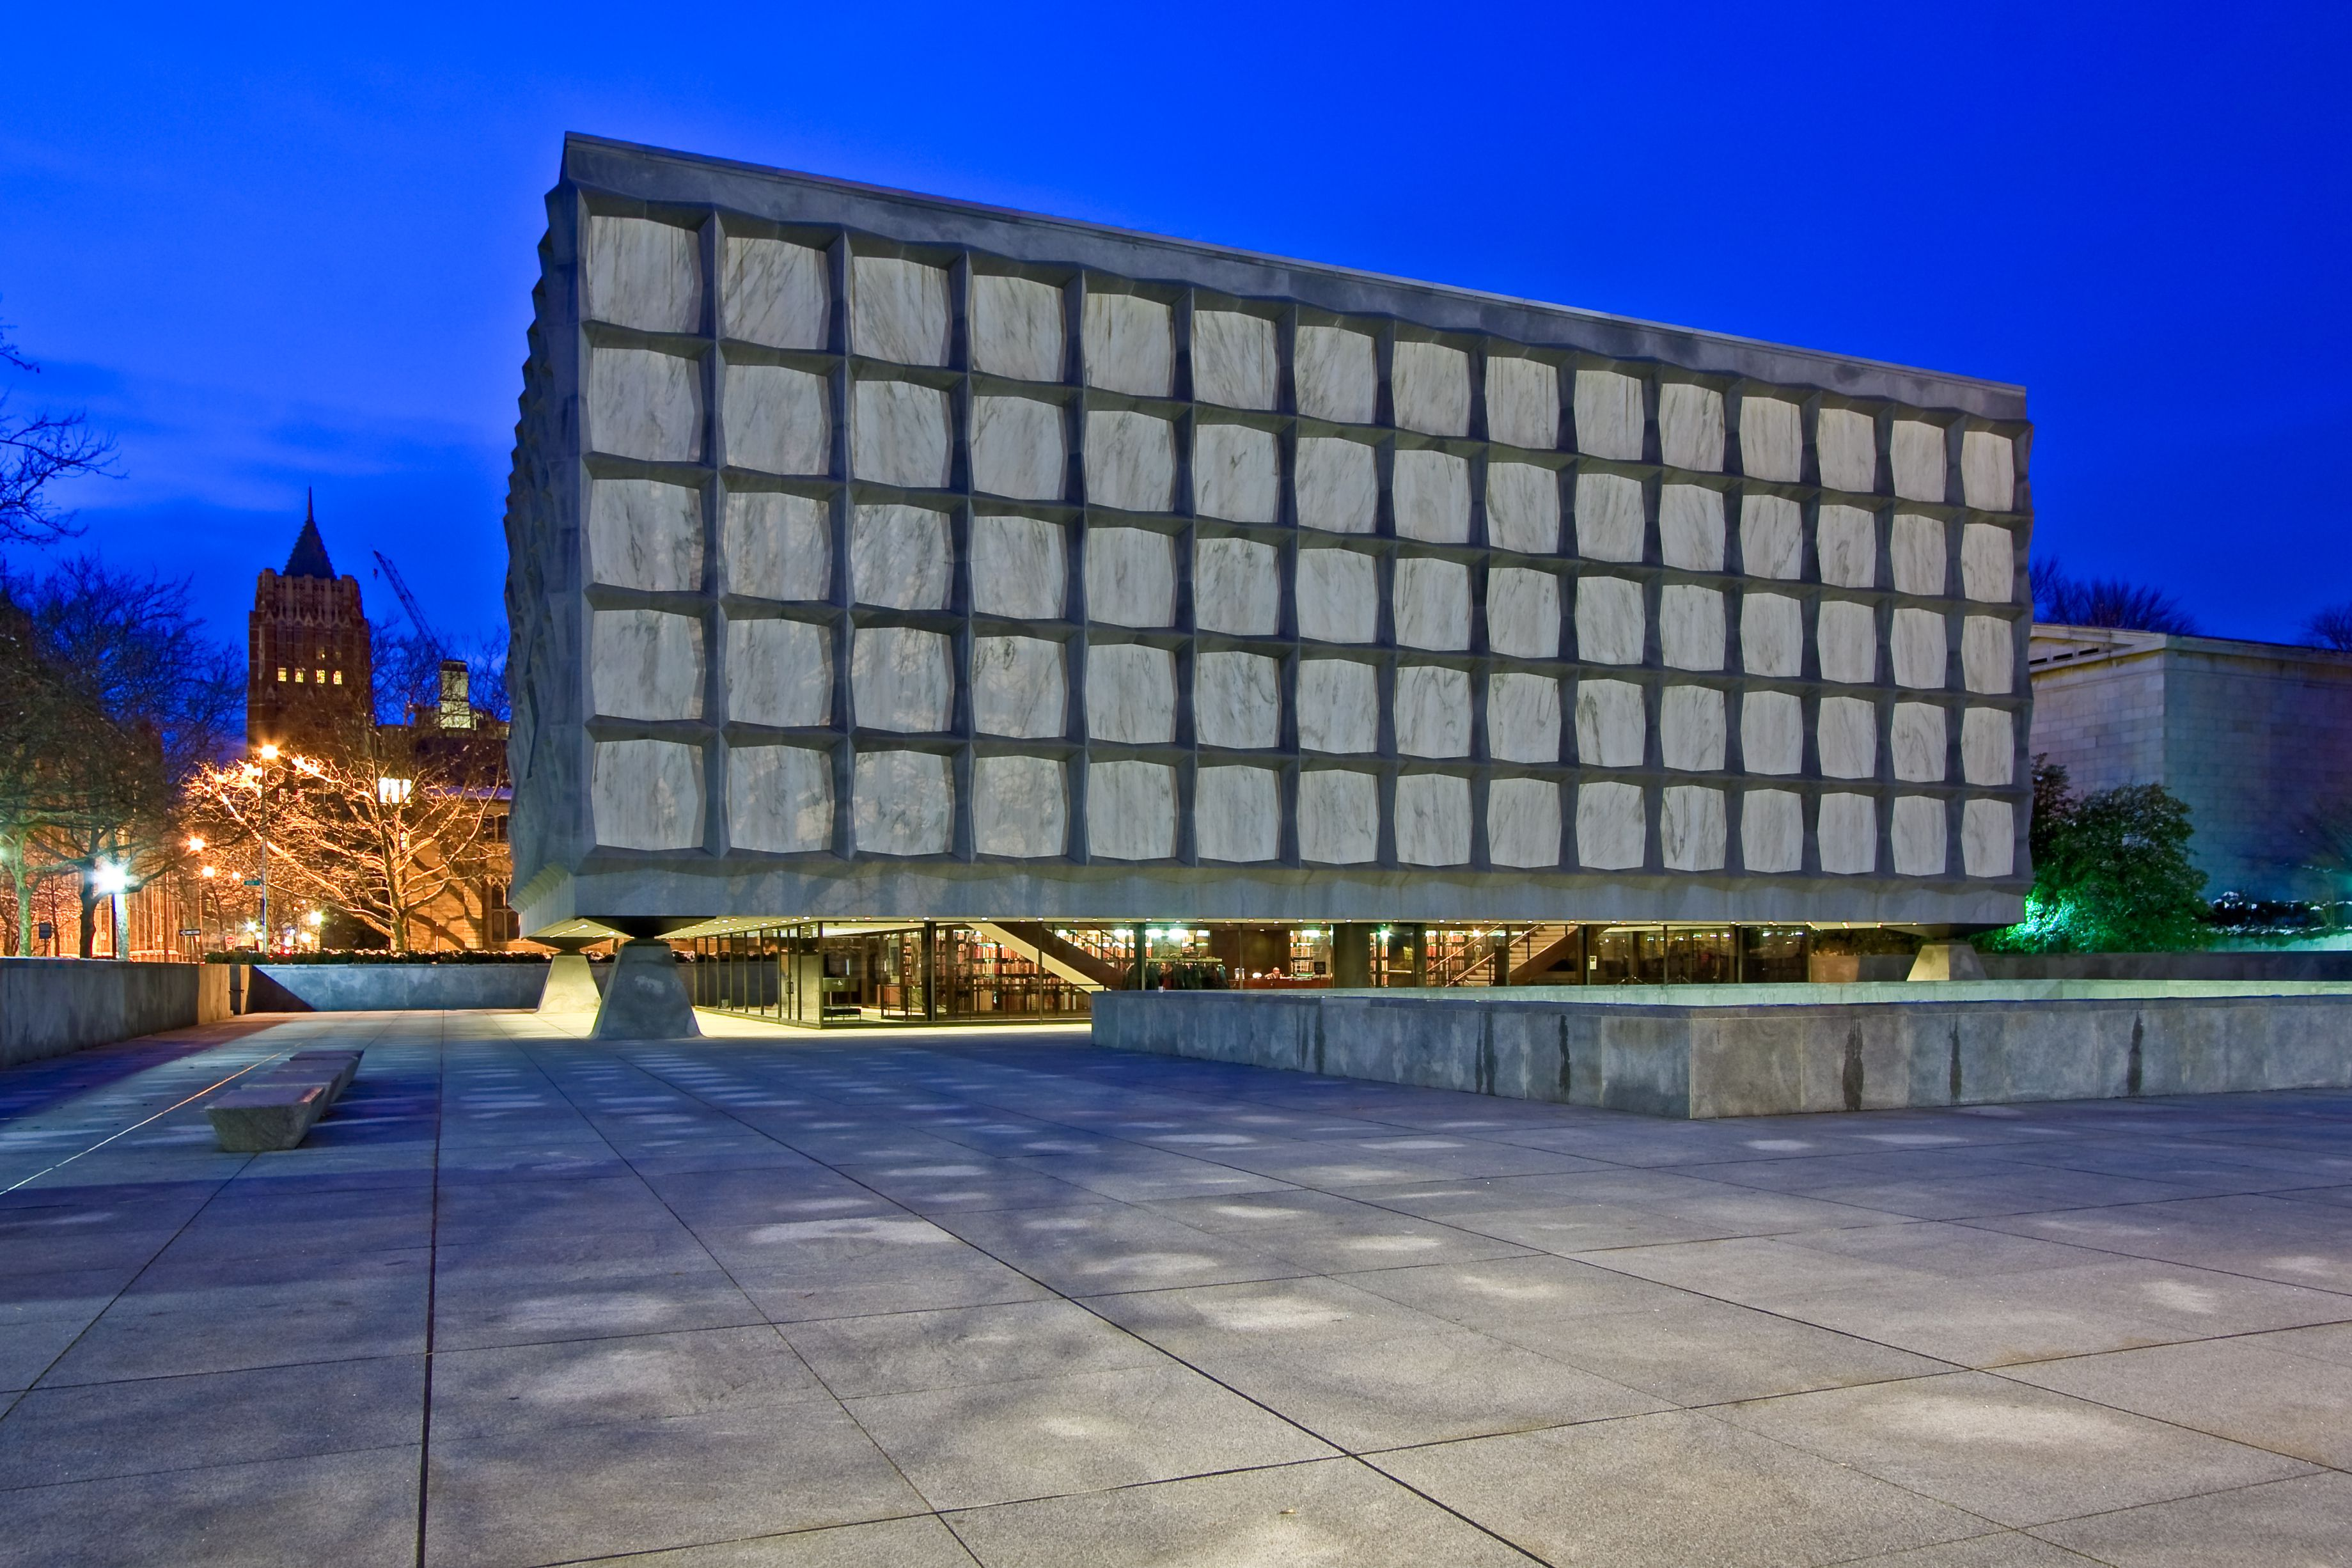 Beinecke Rare Book and Manuscript Library at Yale University, New Haven, Connecticut